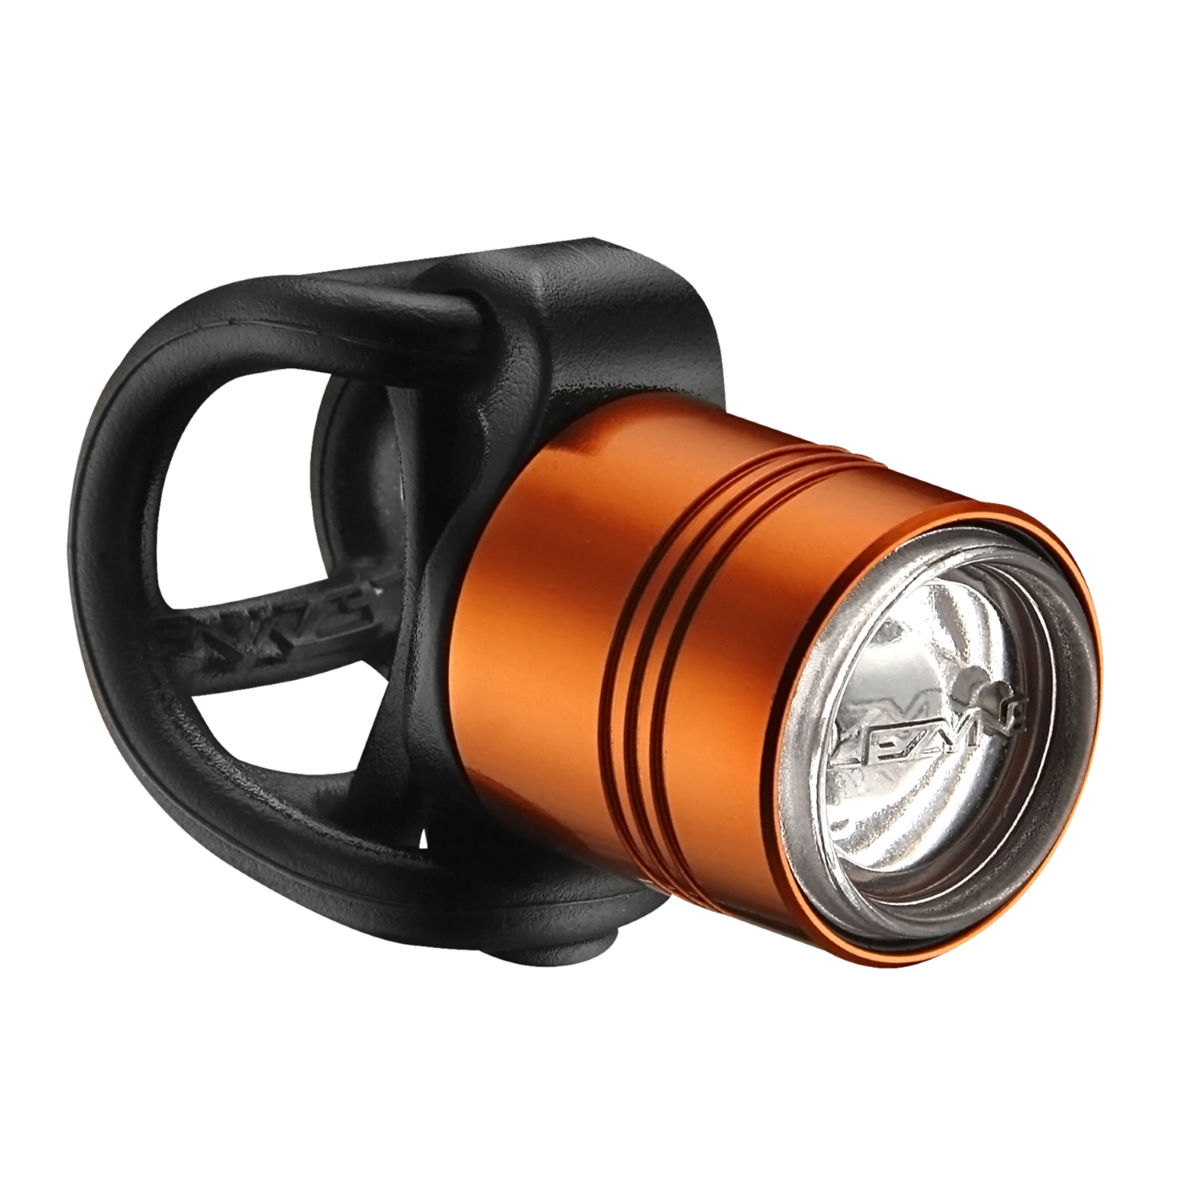 Eclairage avant LED Lezyne Femto Drive - Orange/Orange